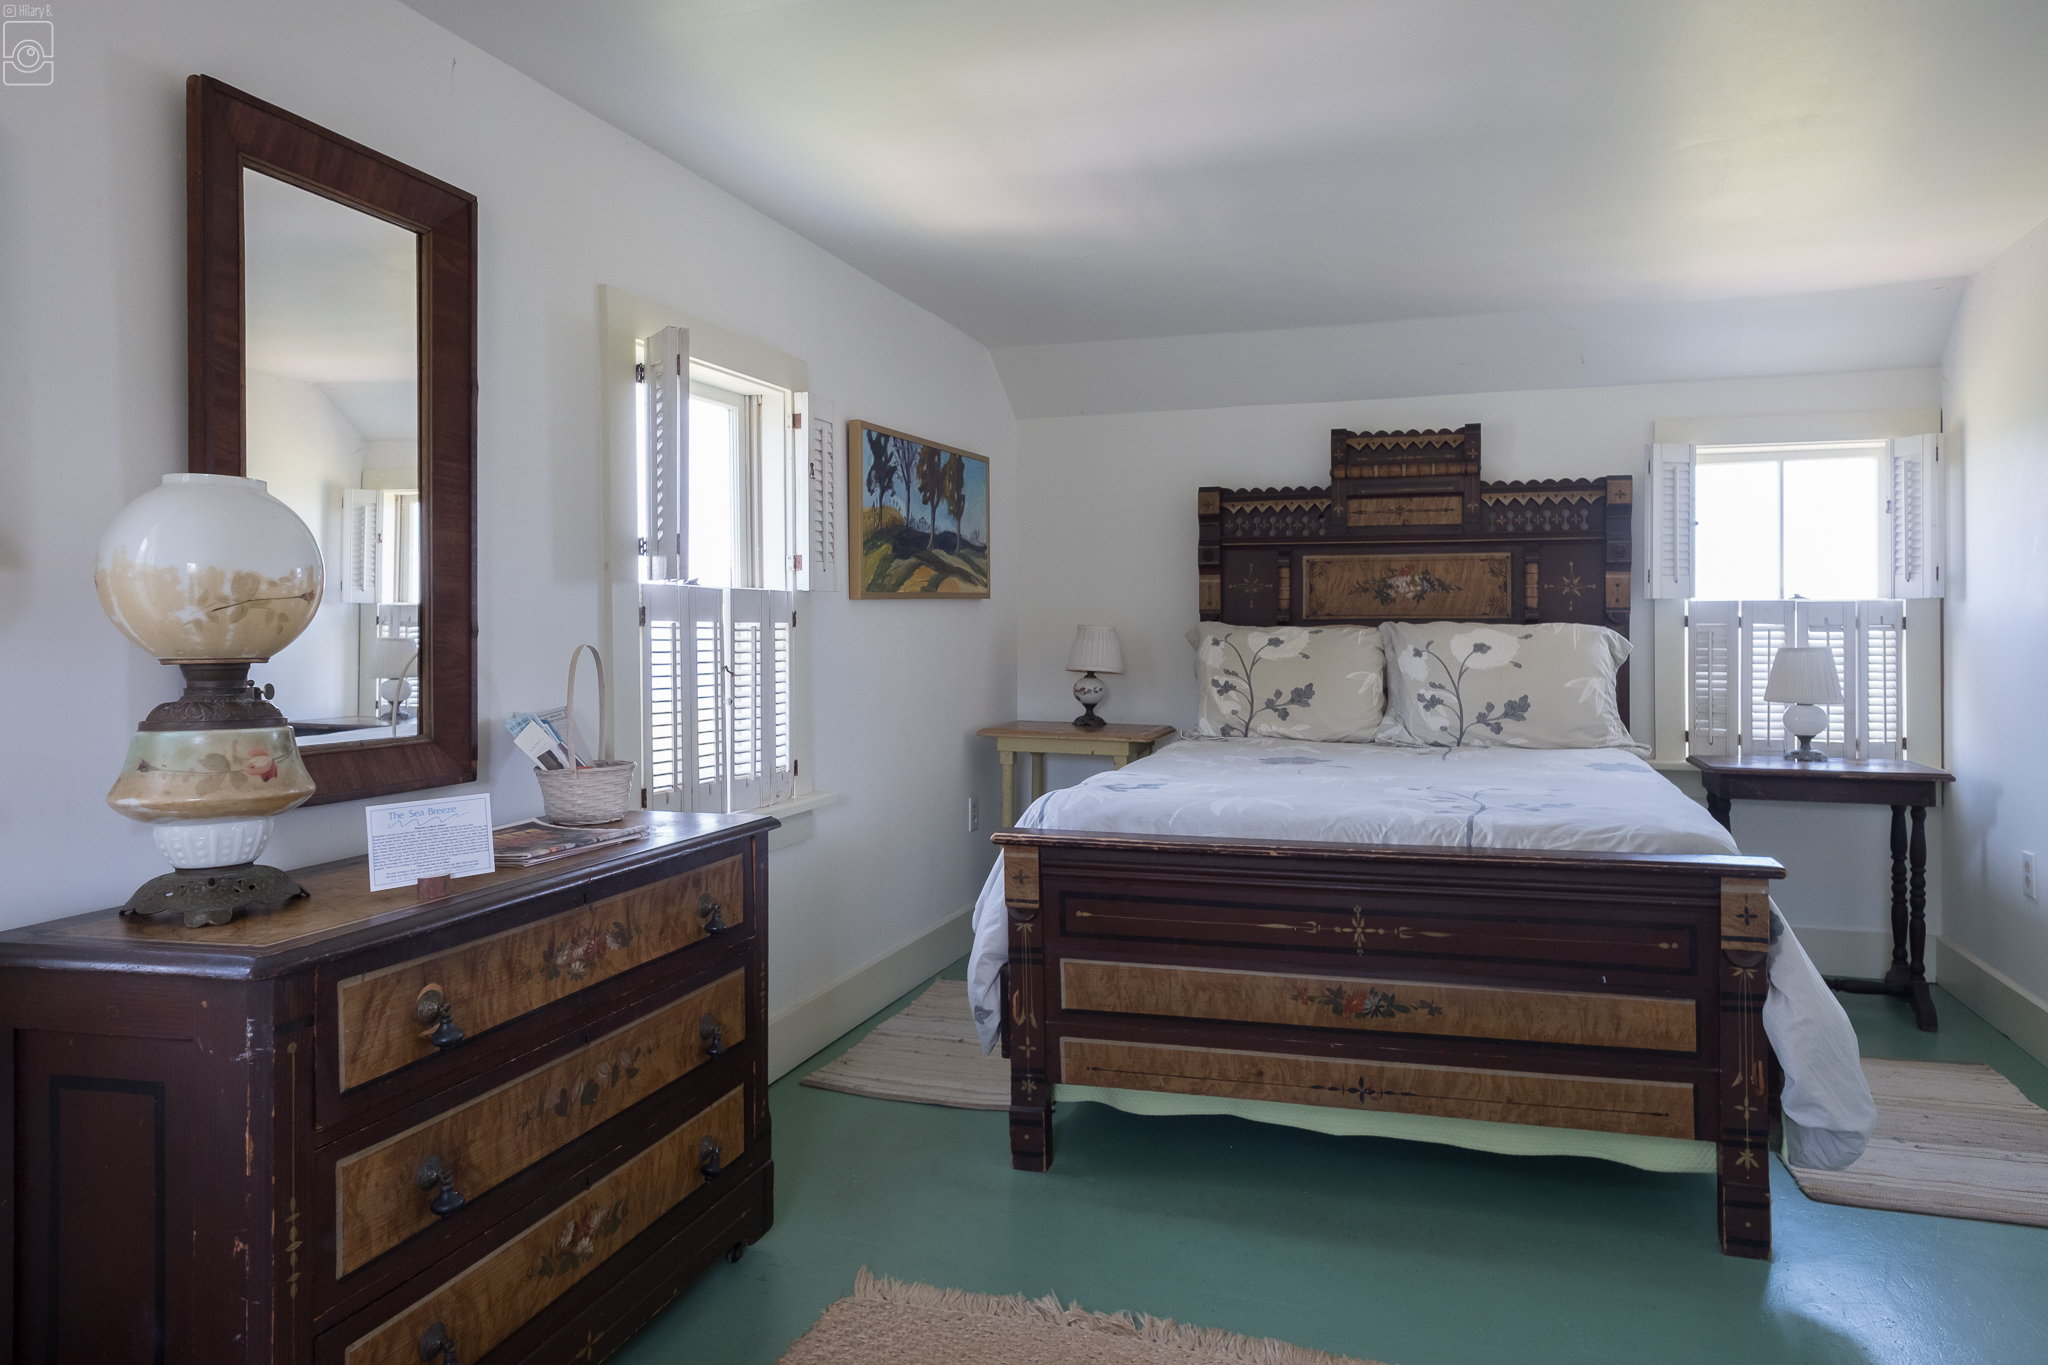 Room 5, one double bed